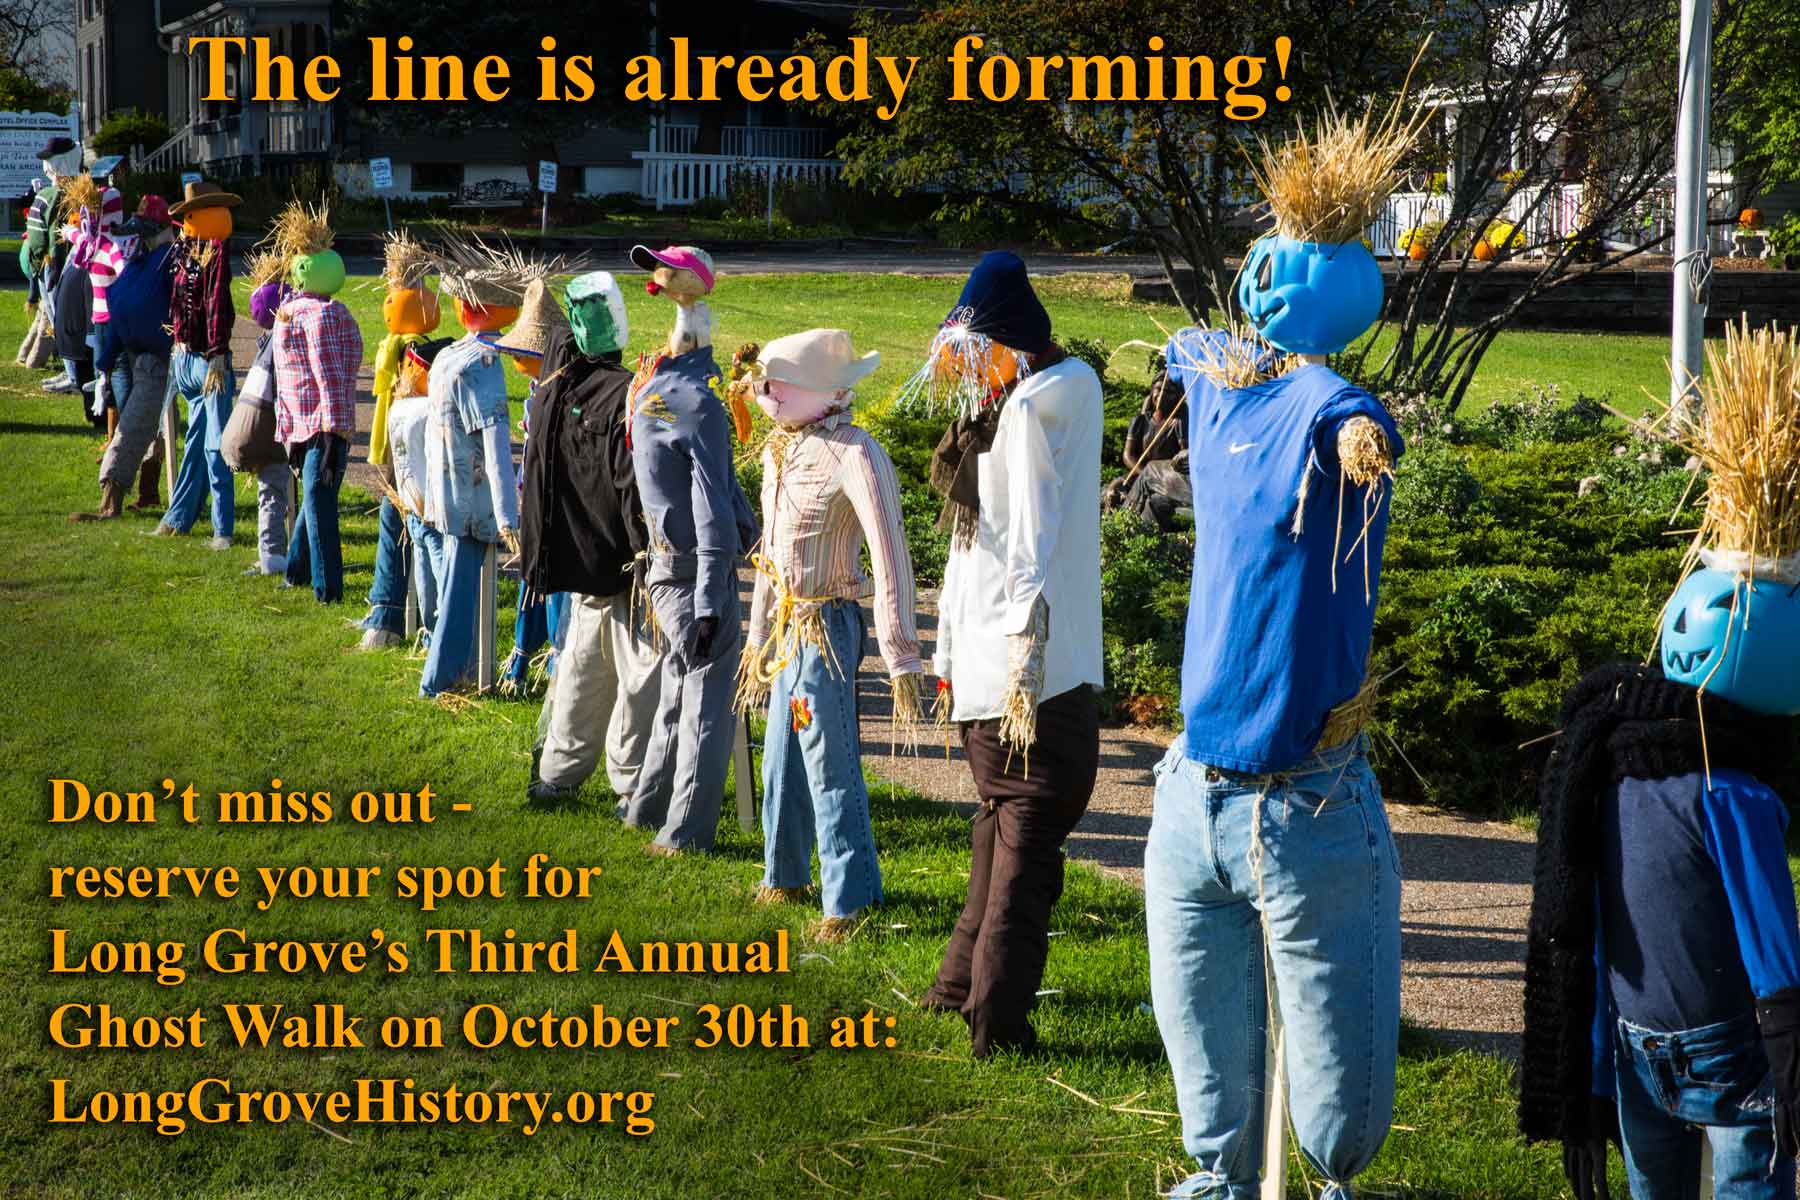 Better get in line for all of the fun happenings this Fall in Long Grove!